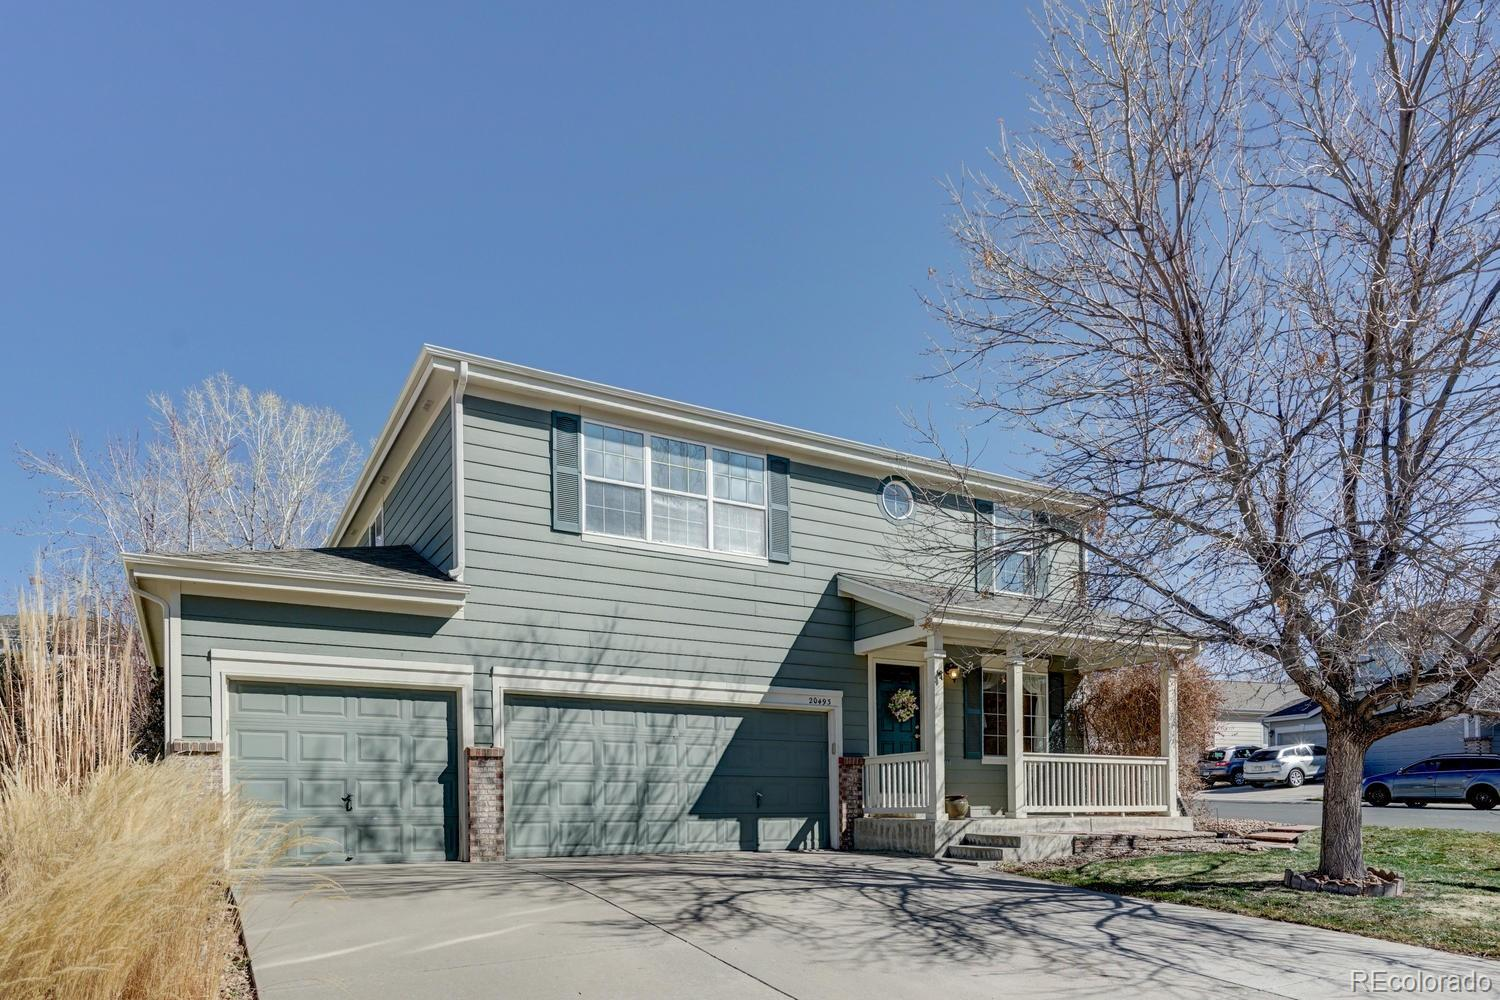 MLS# 5653279 - 20493 E Grand Place, Aurora, CO 80015